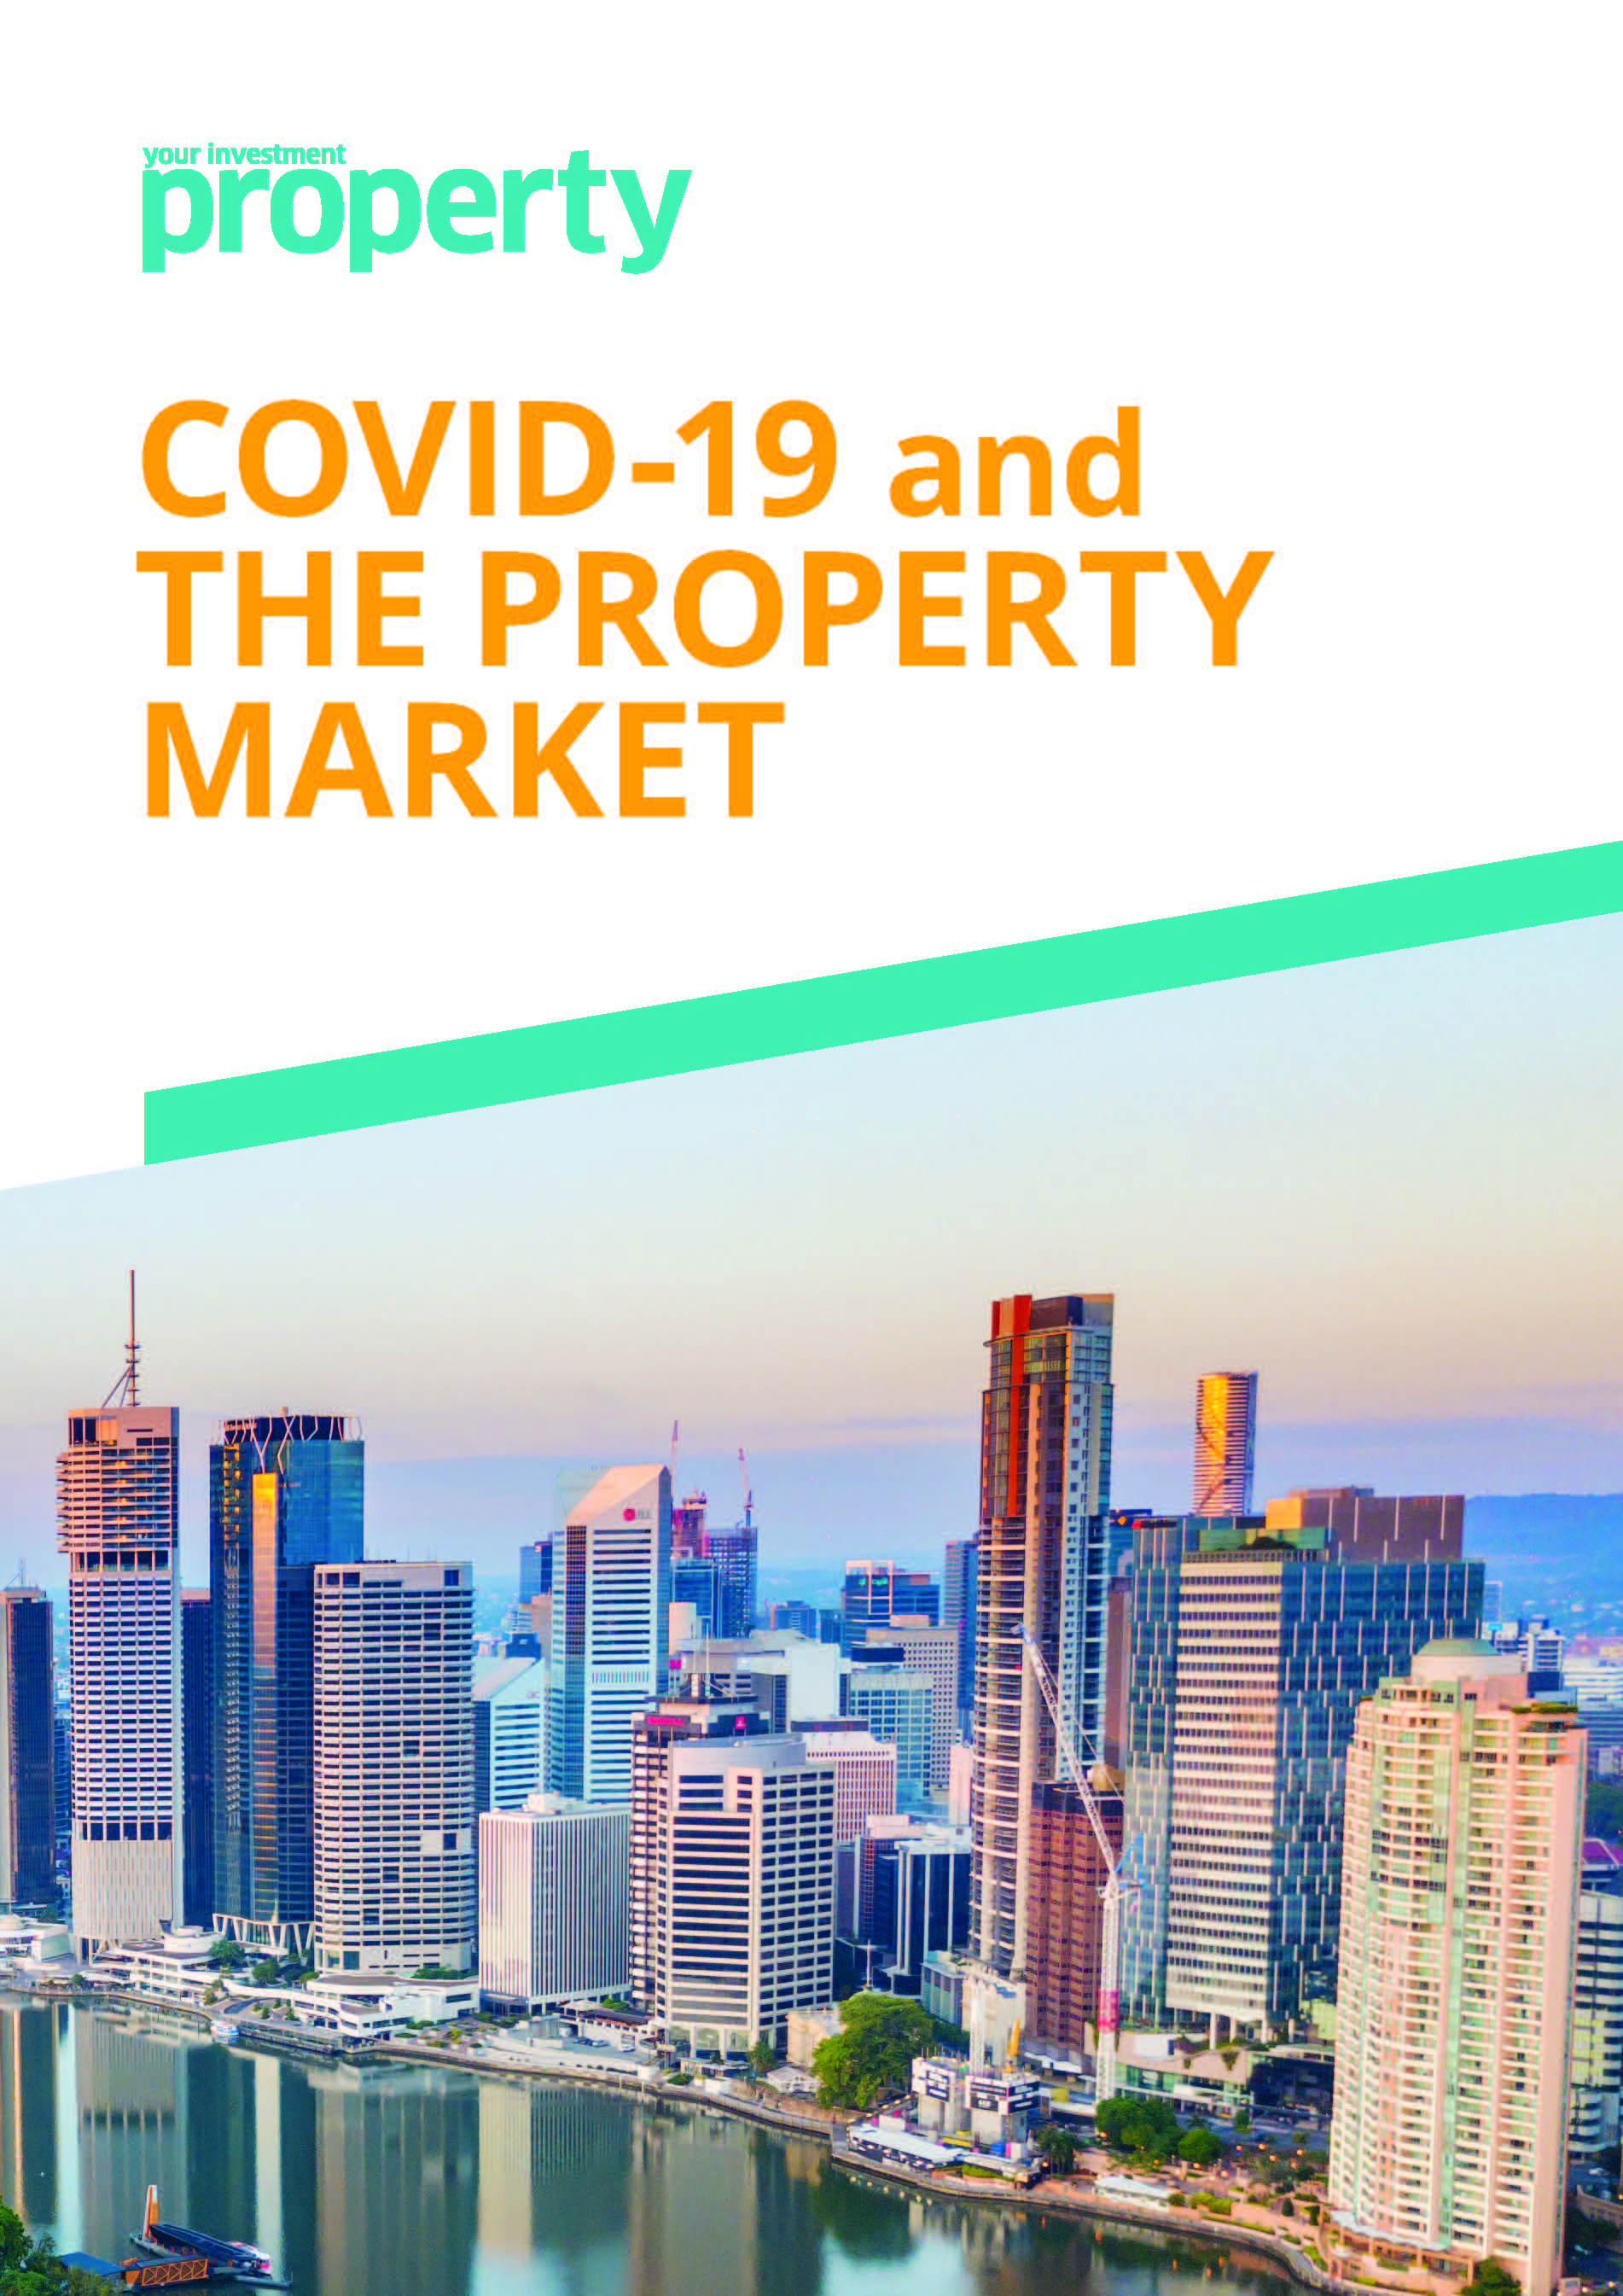 COVID-19 and the property market